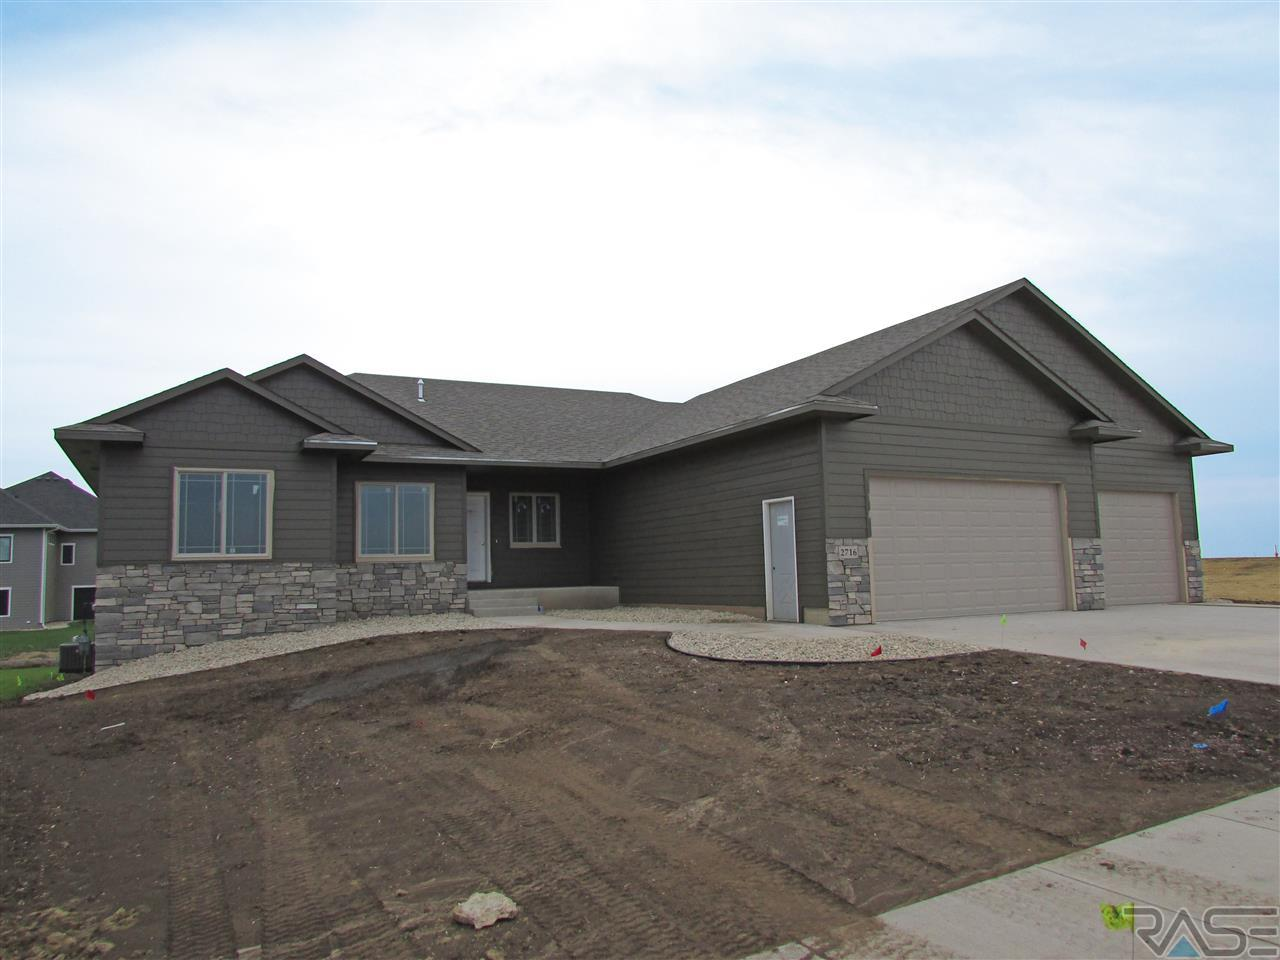 2716 S Moss Stone Ave, Sioux Falls, SD 57110